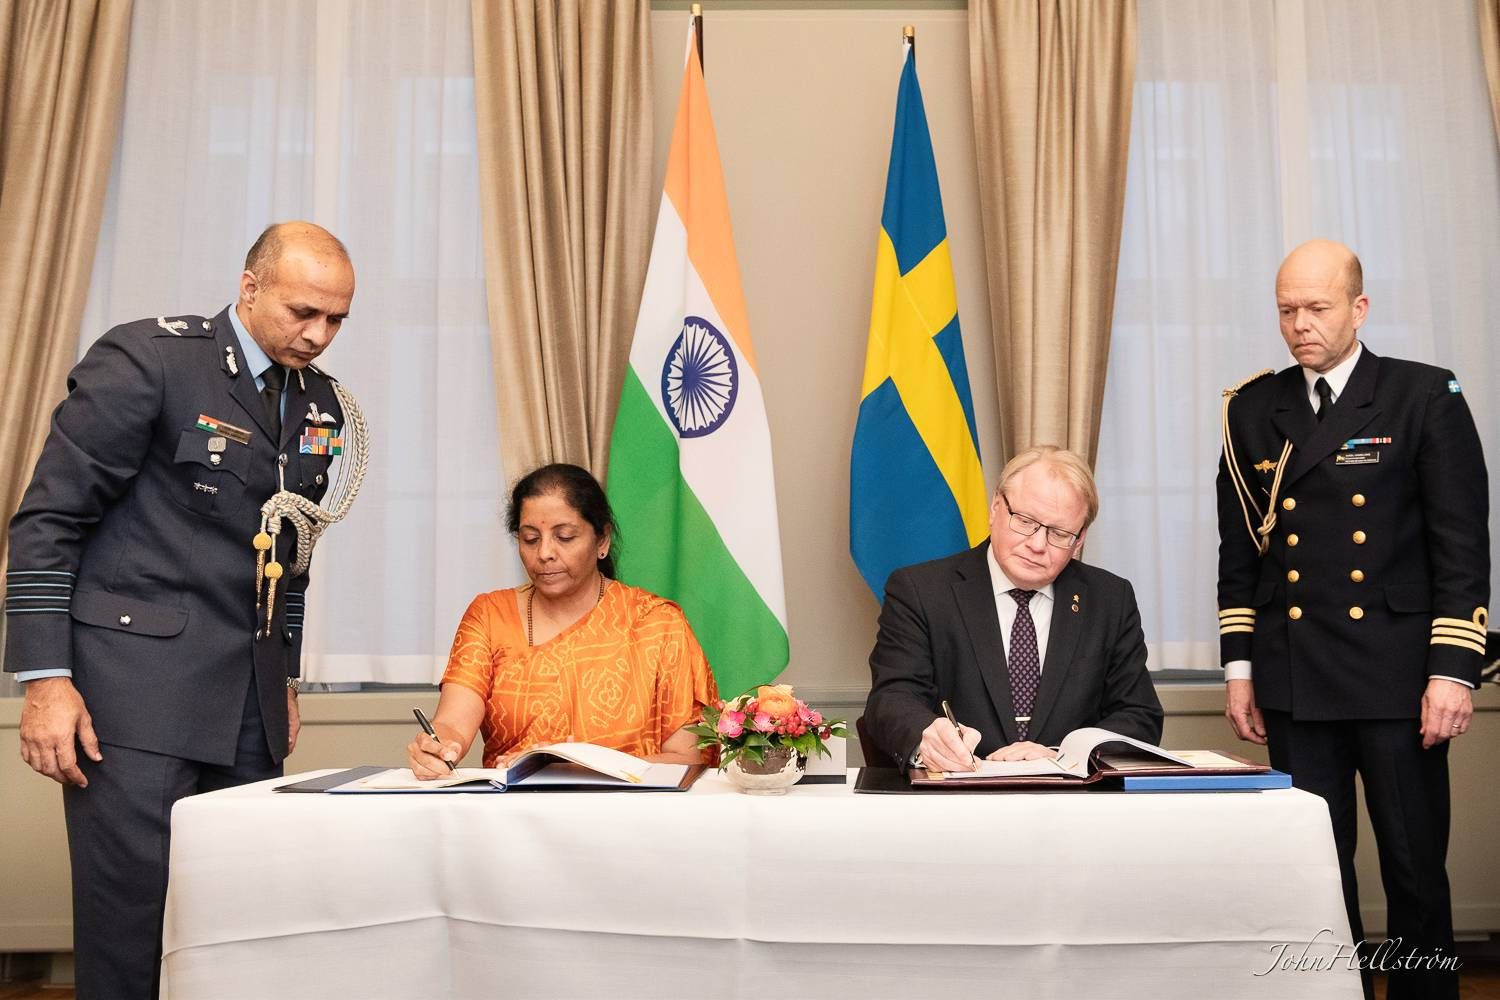 Embassy-of-India-Defence-Minister-Sweden-83.jpg